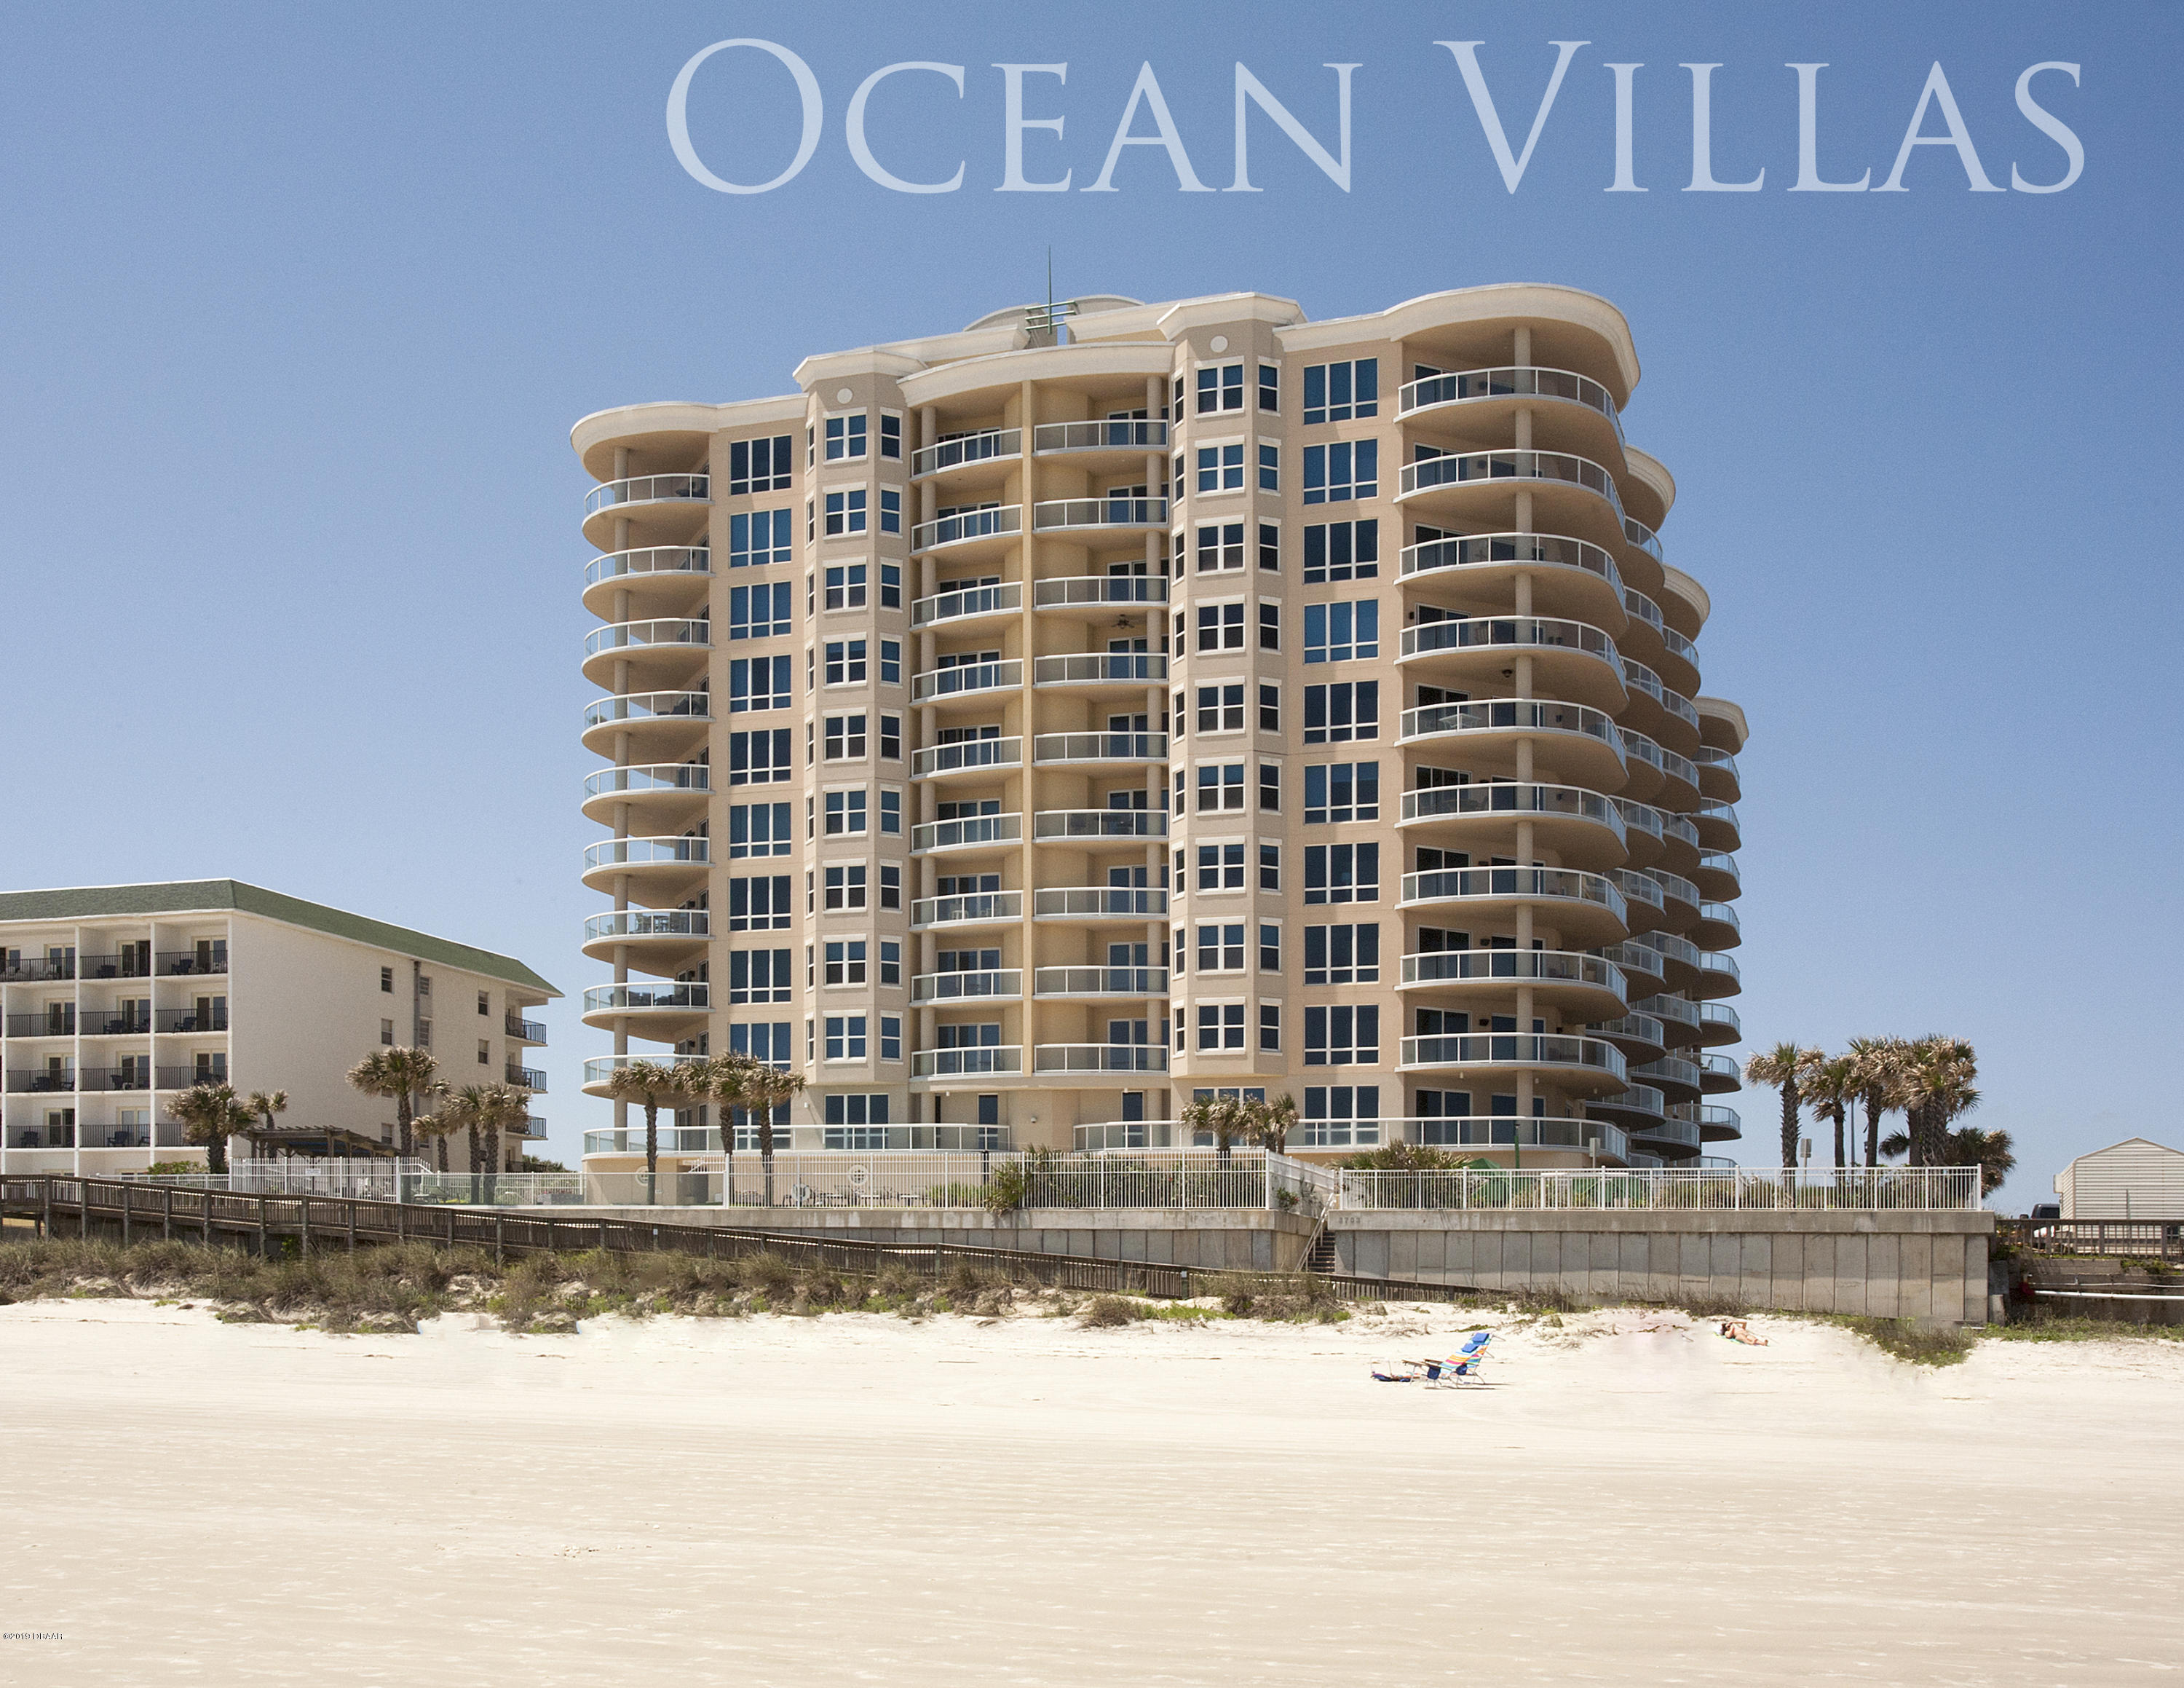 3703 S Atlantic Avenue, Daytona Beach Shores, Florida